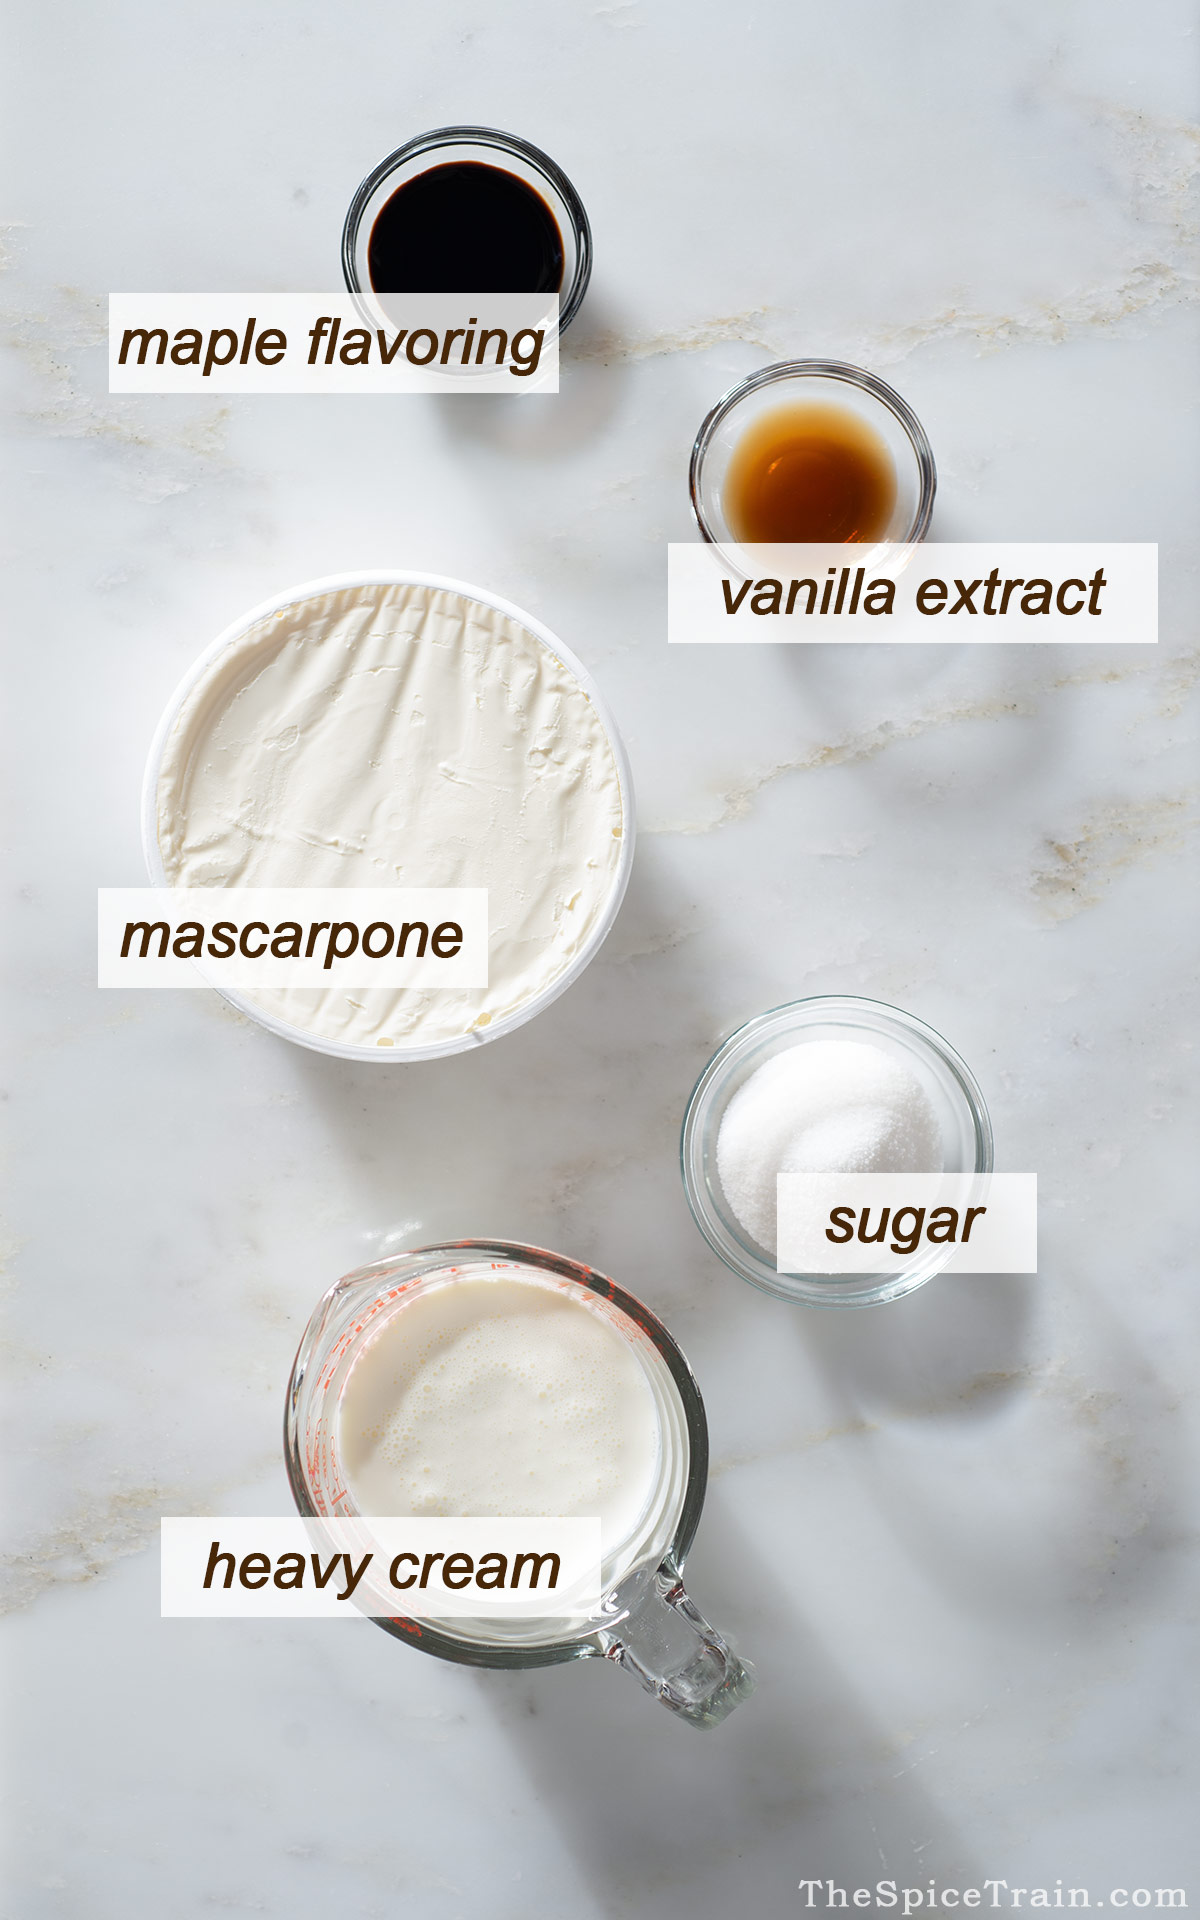 All ingredients needed to make maple mascarpone frosting.